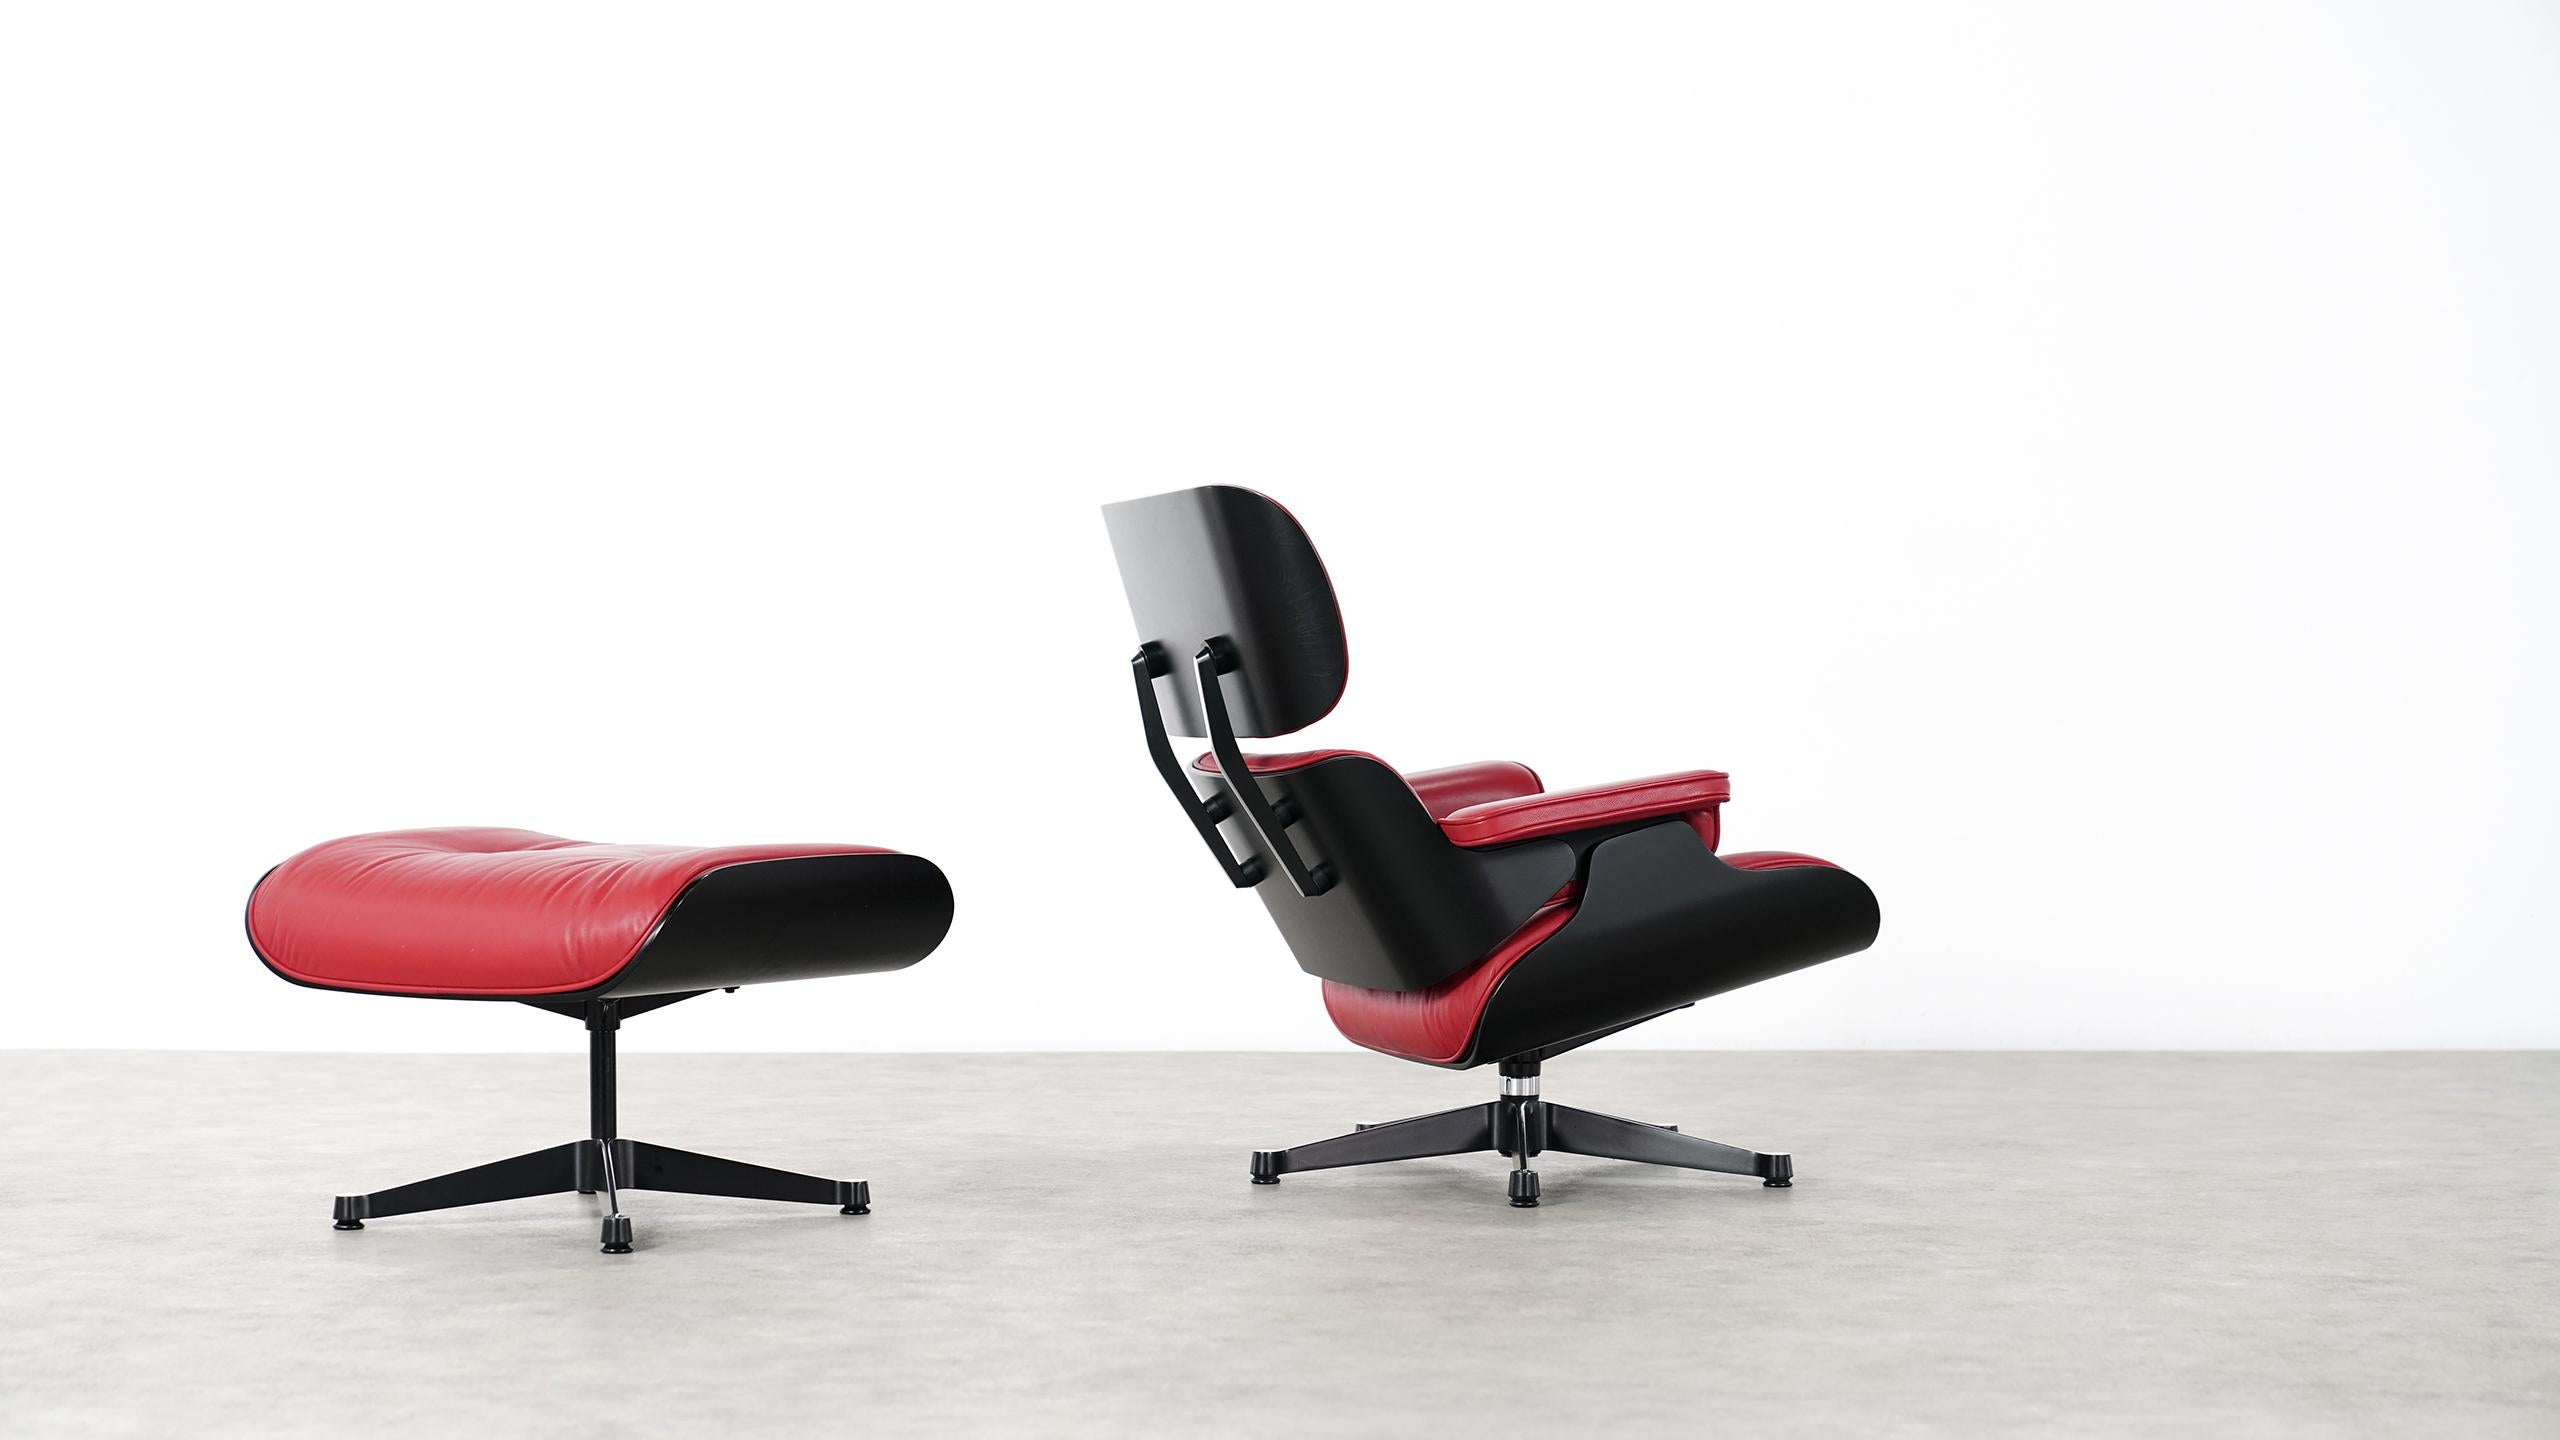 Vitra Eames Lounge Chair Vitra Charles Eames Lounge Chair And Ottoman By Vitra Red Leather Black Shells